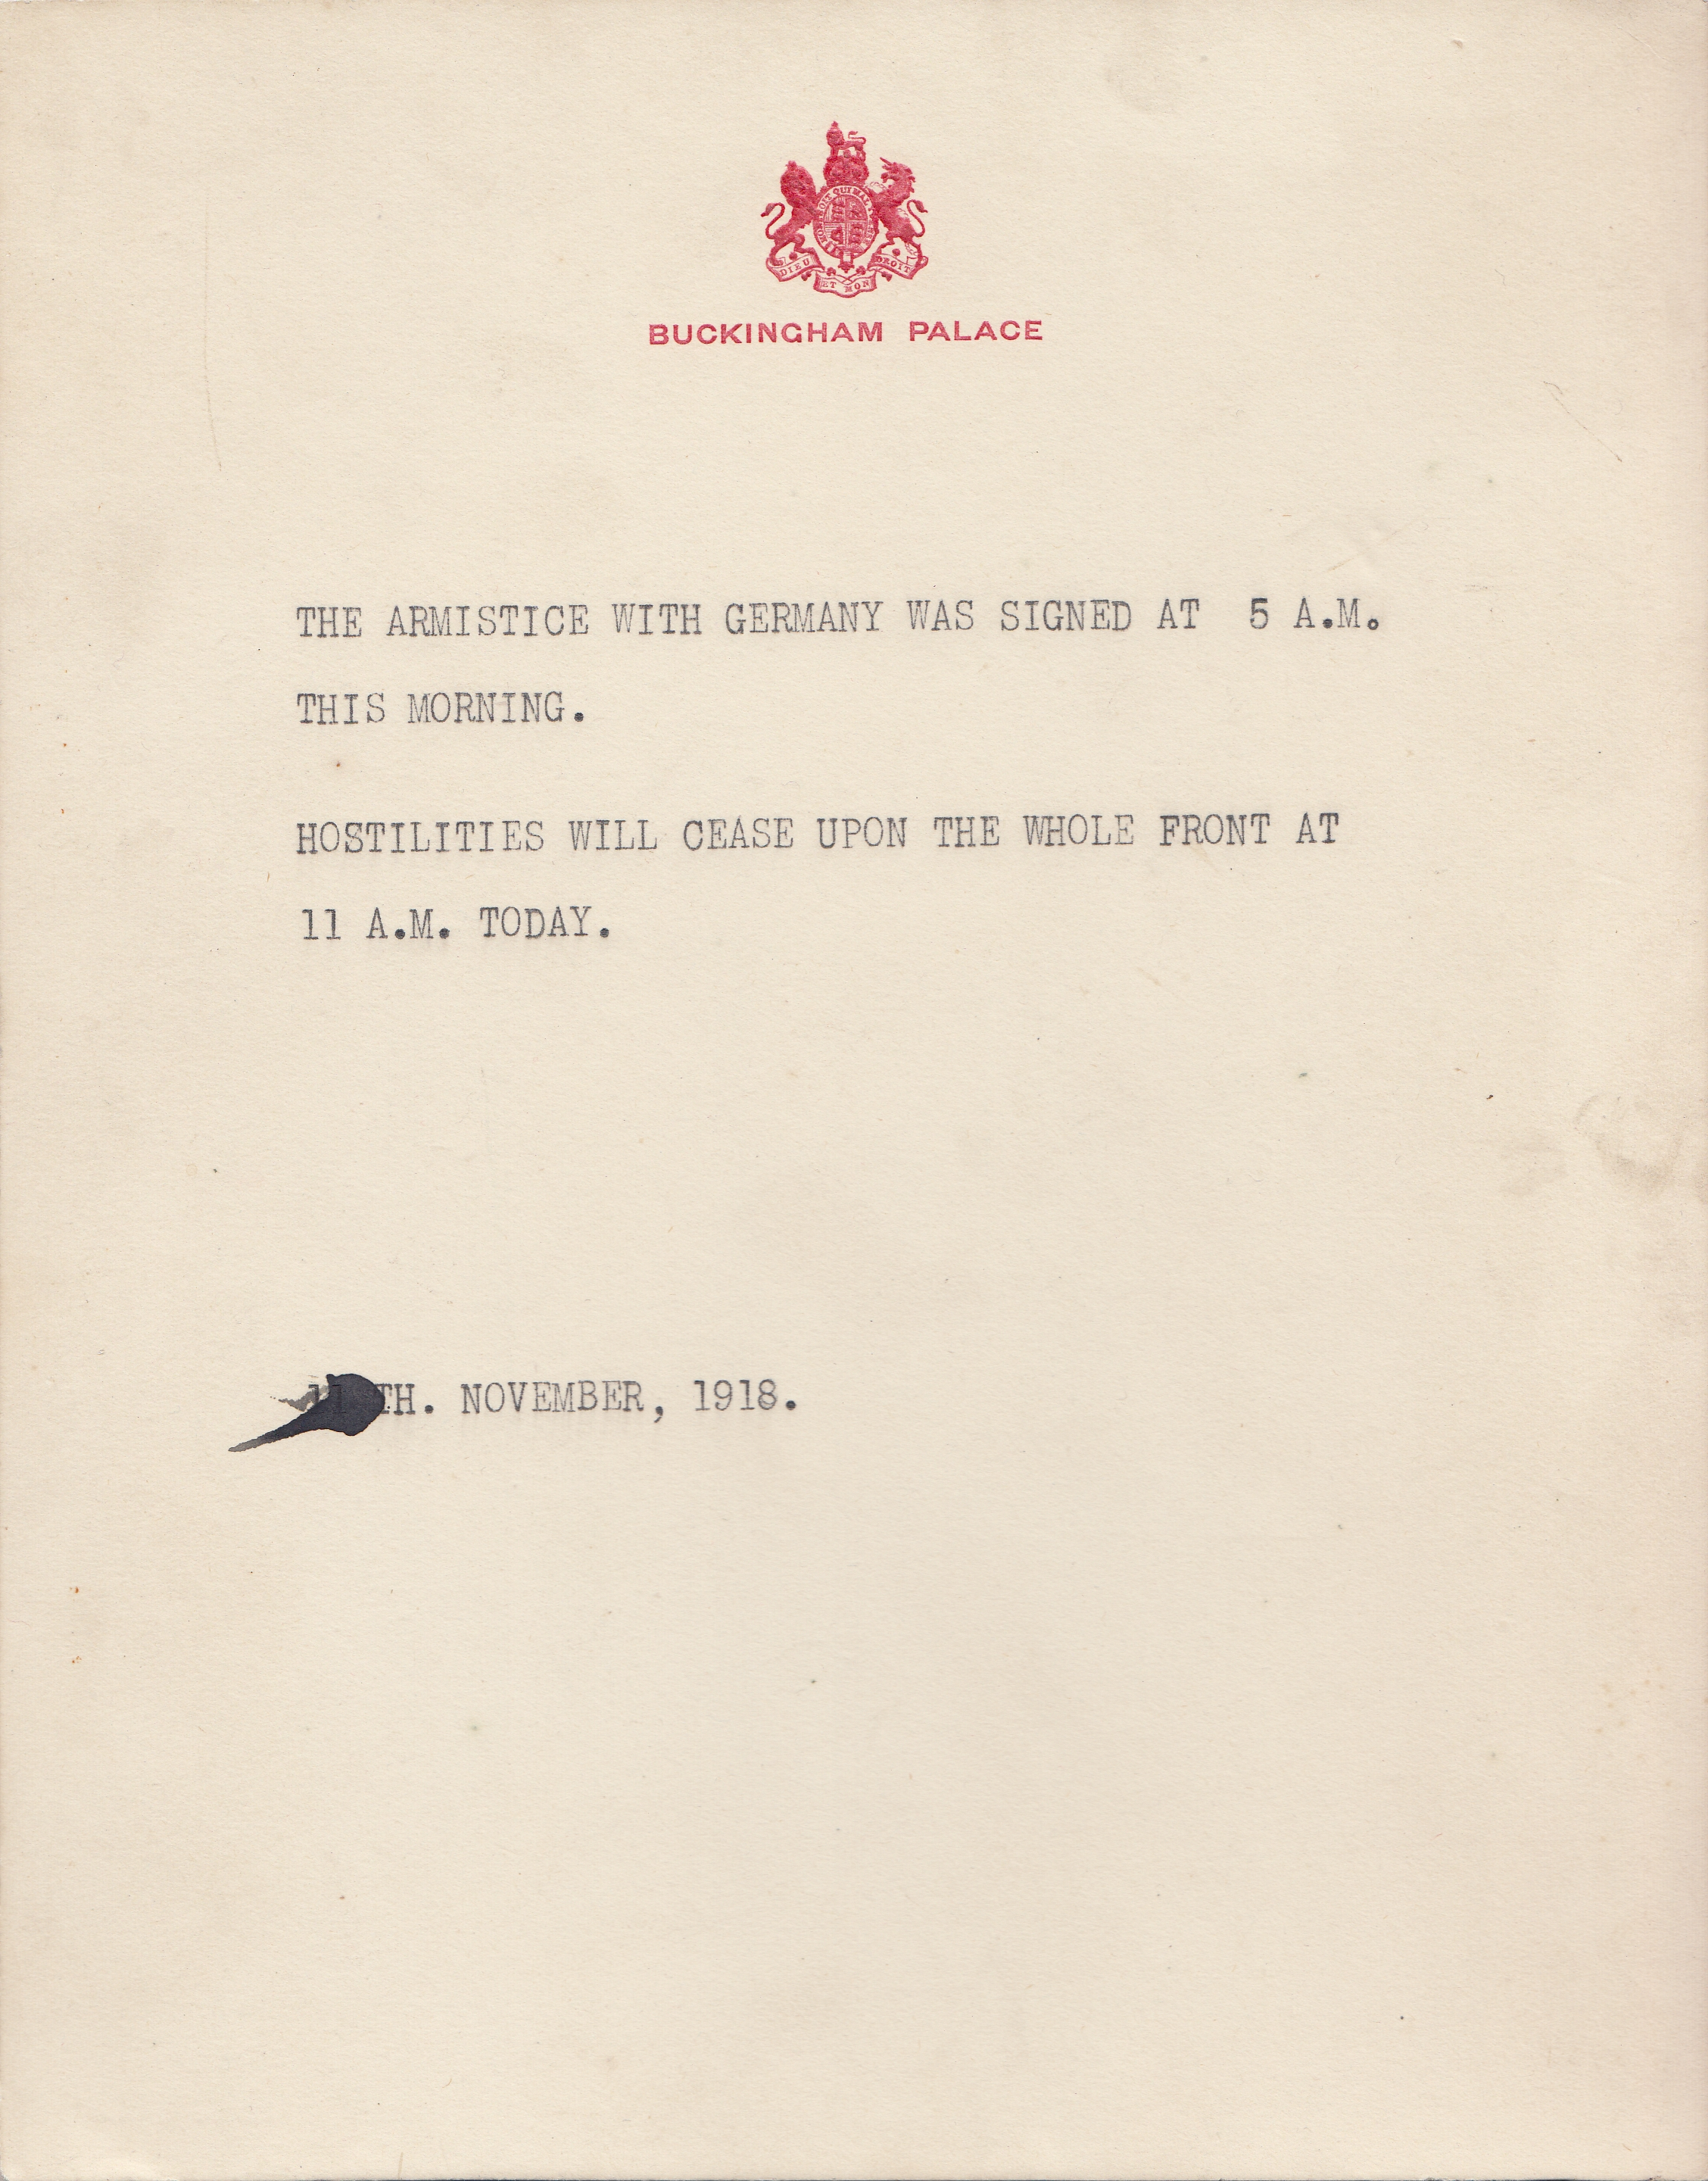 Buckingham Palace public notice to confirm the end of WWI. Photo: Henry Aldridge & Son